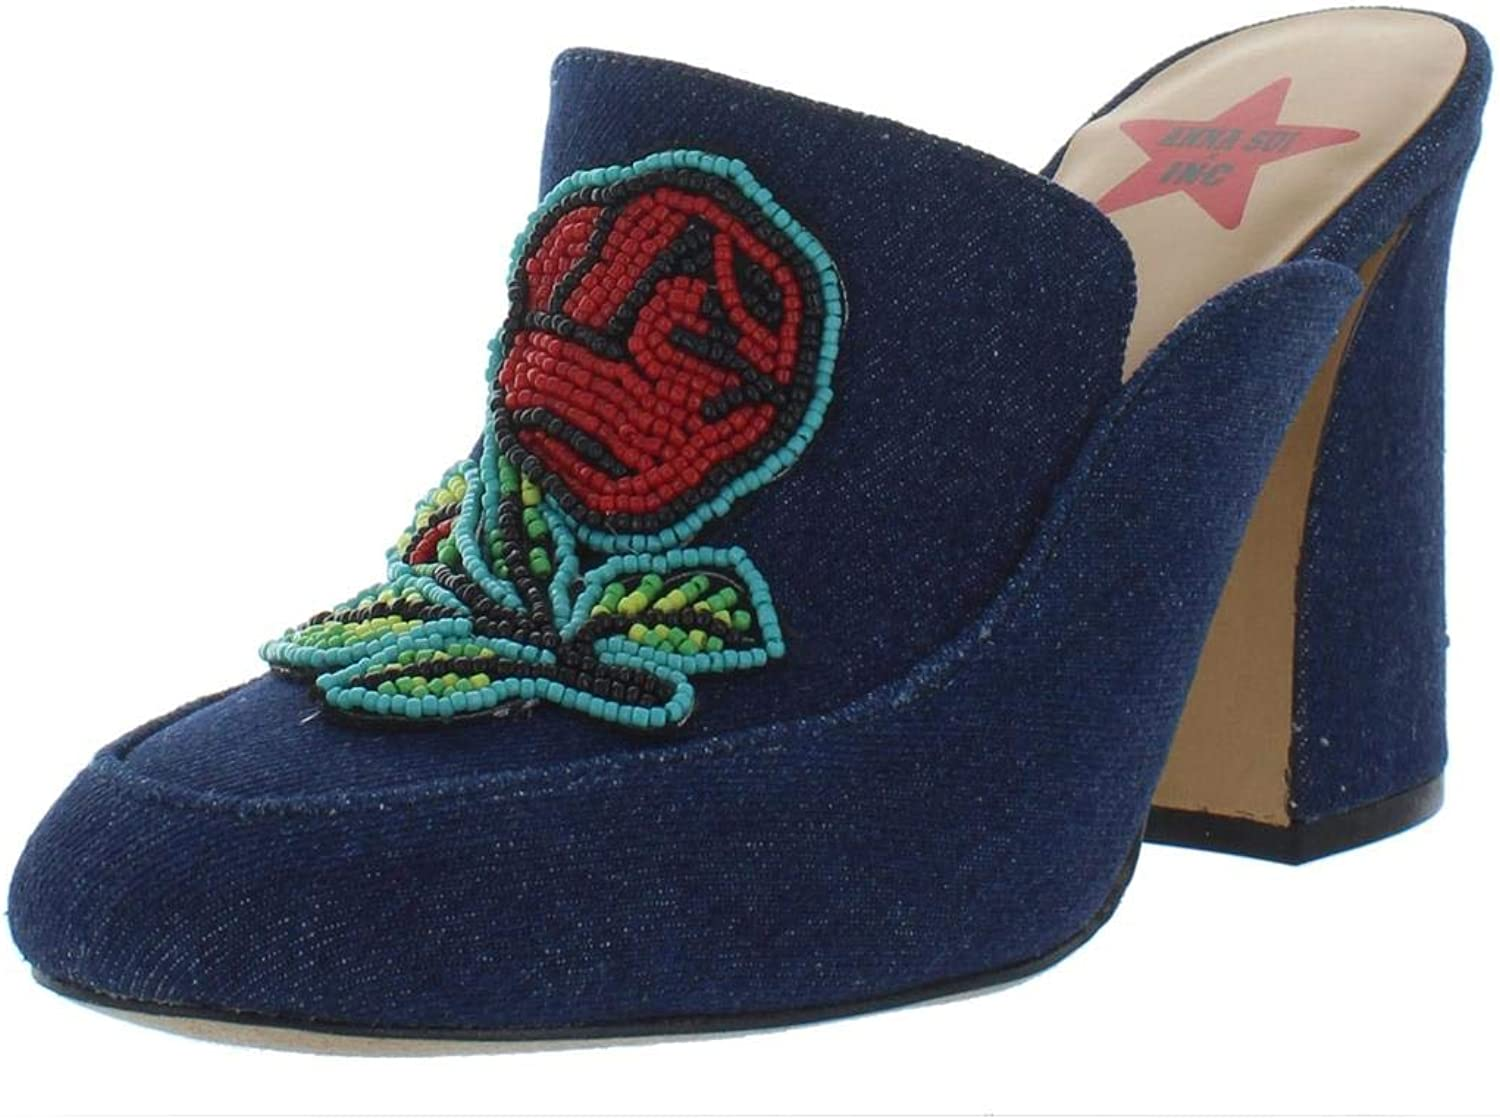 Inc Womens Maddiee 2 Embroidered Mules